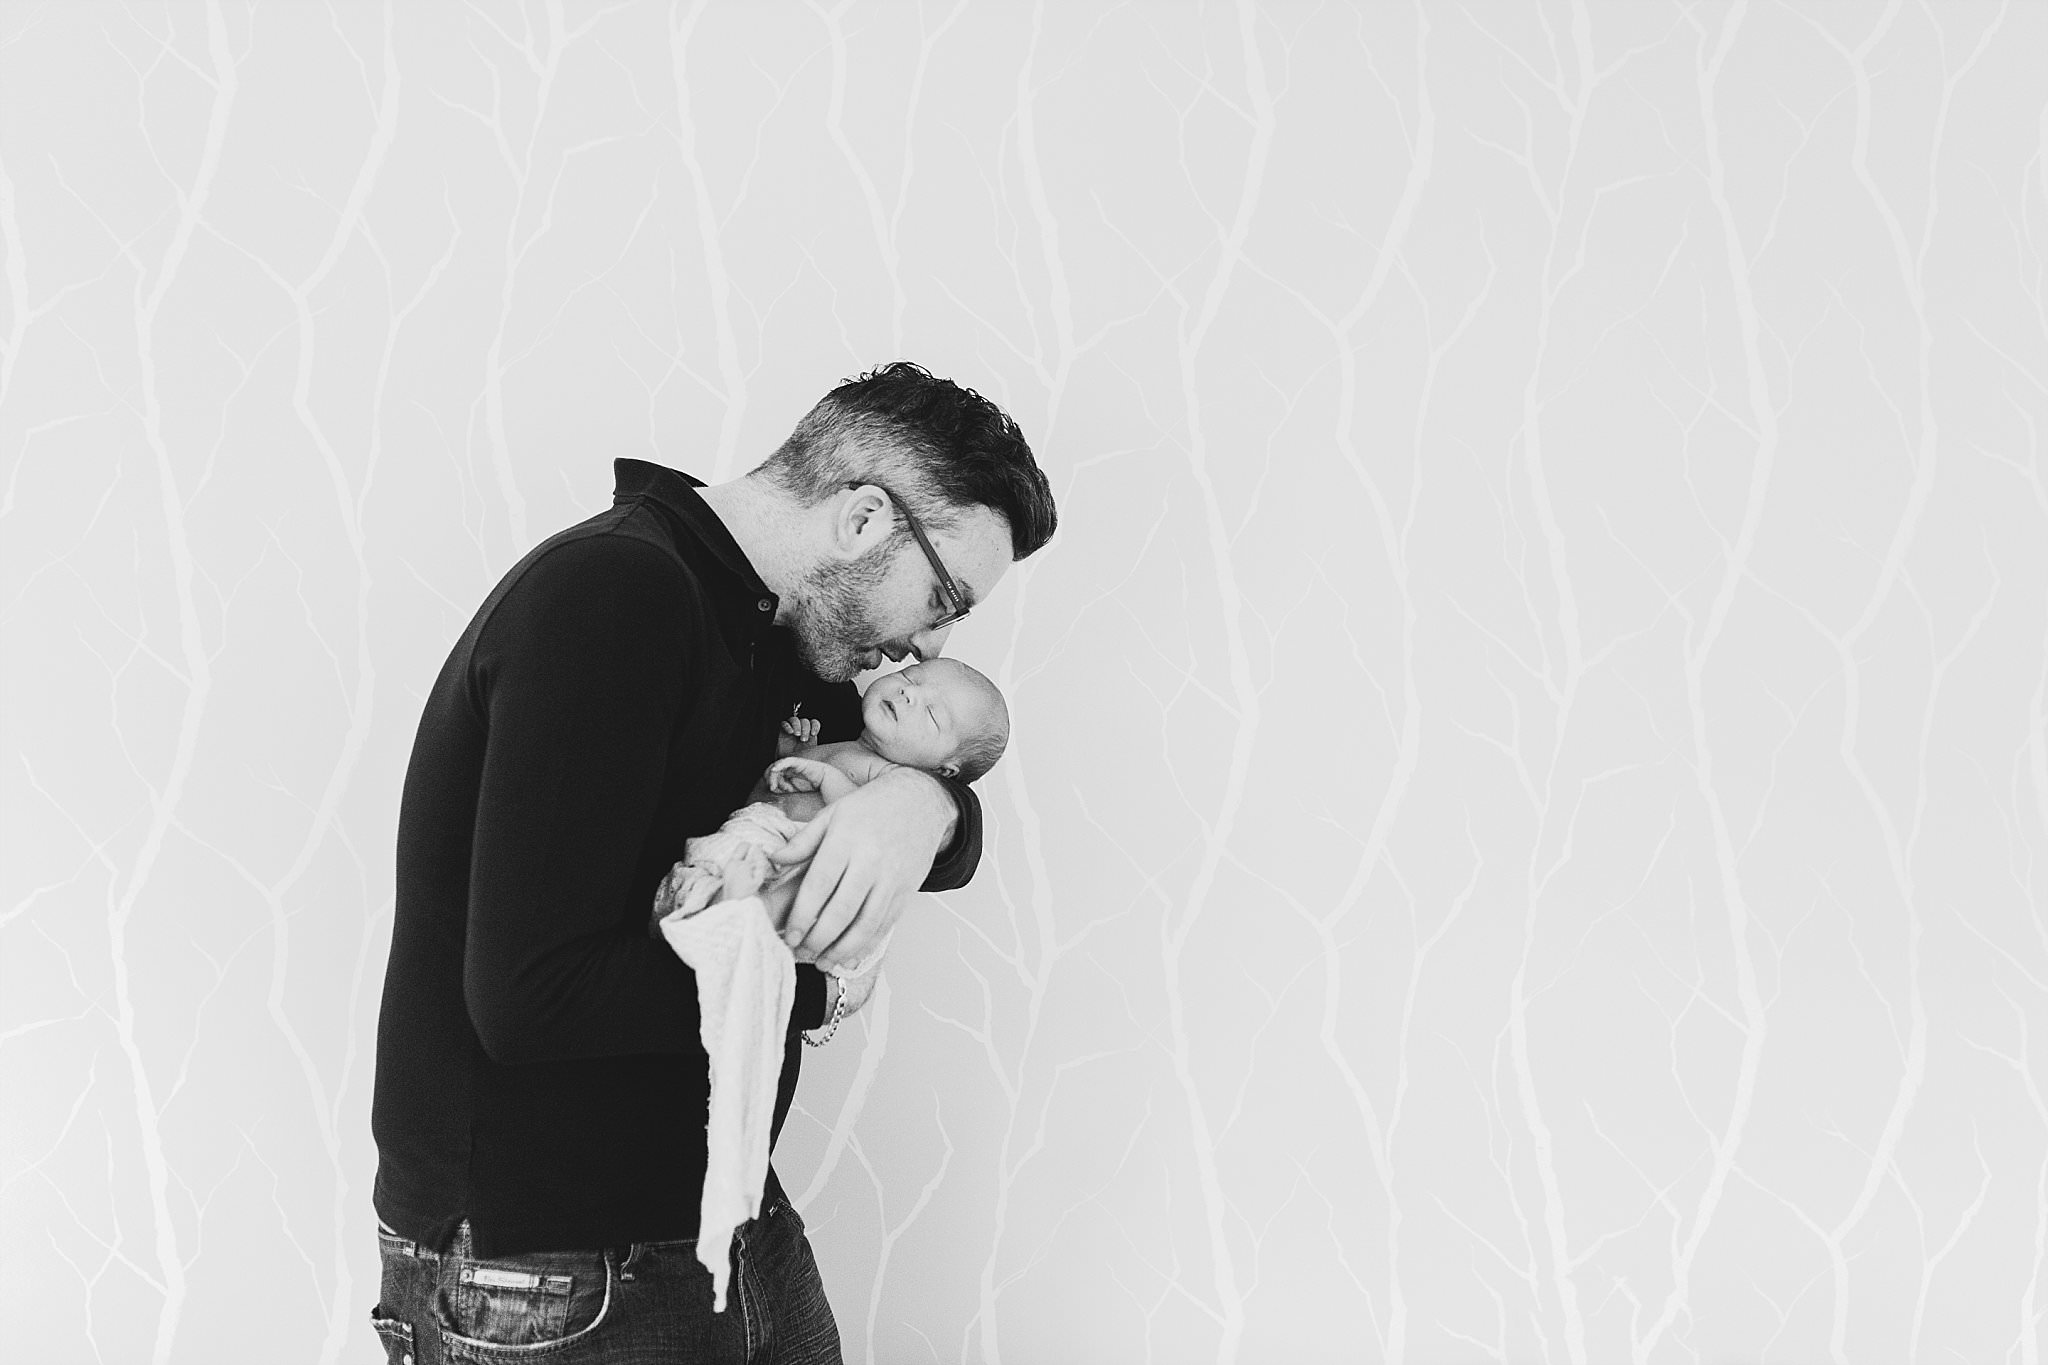 Baby Photographers Glasgow,Chantal Lachance-Gibson Photography,Newborn Photographers Glasgow,The Gibsons,baby photos glasgow,